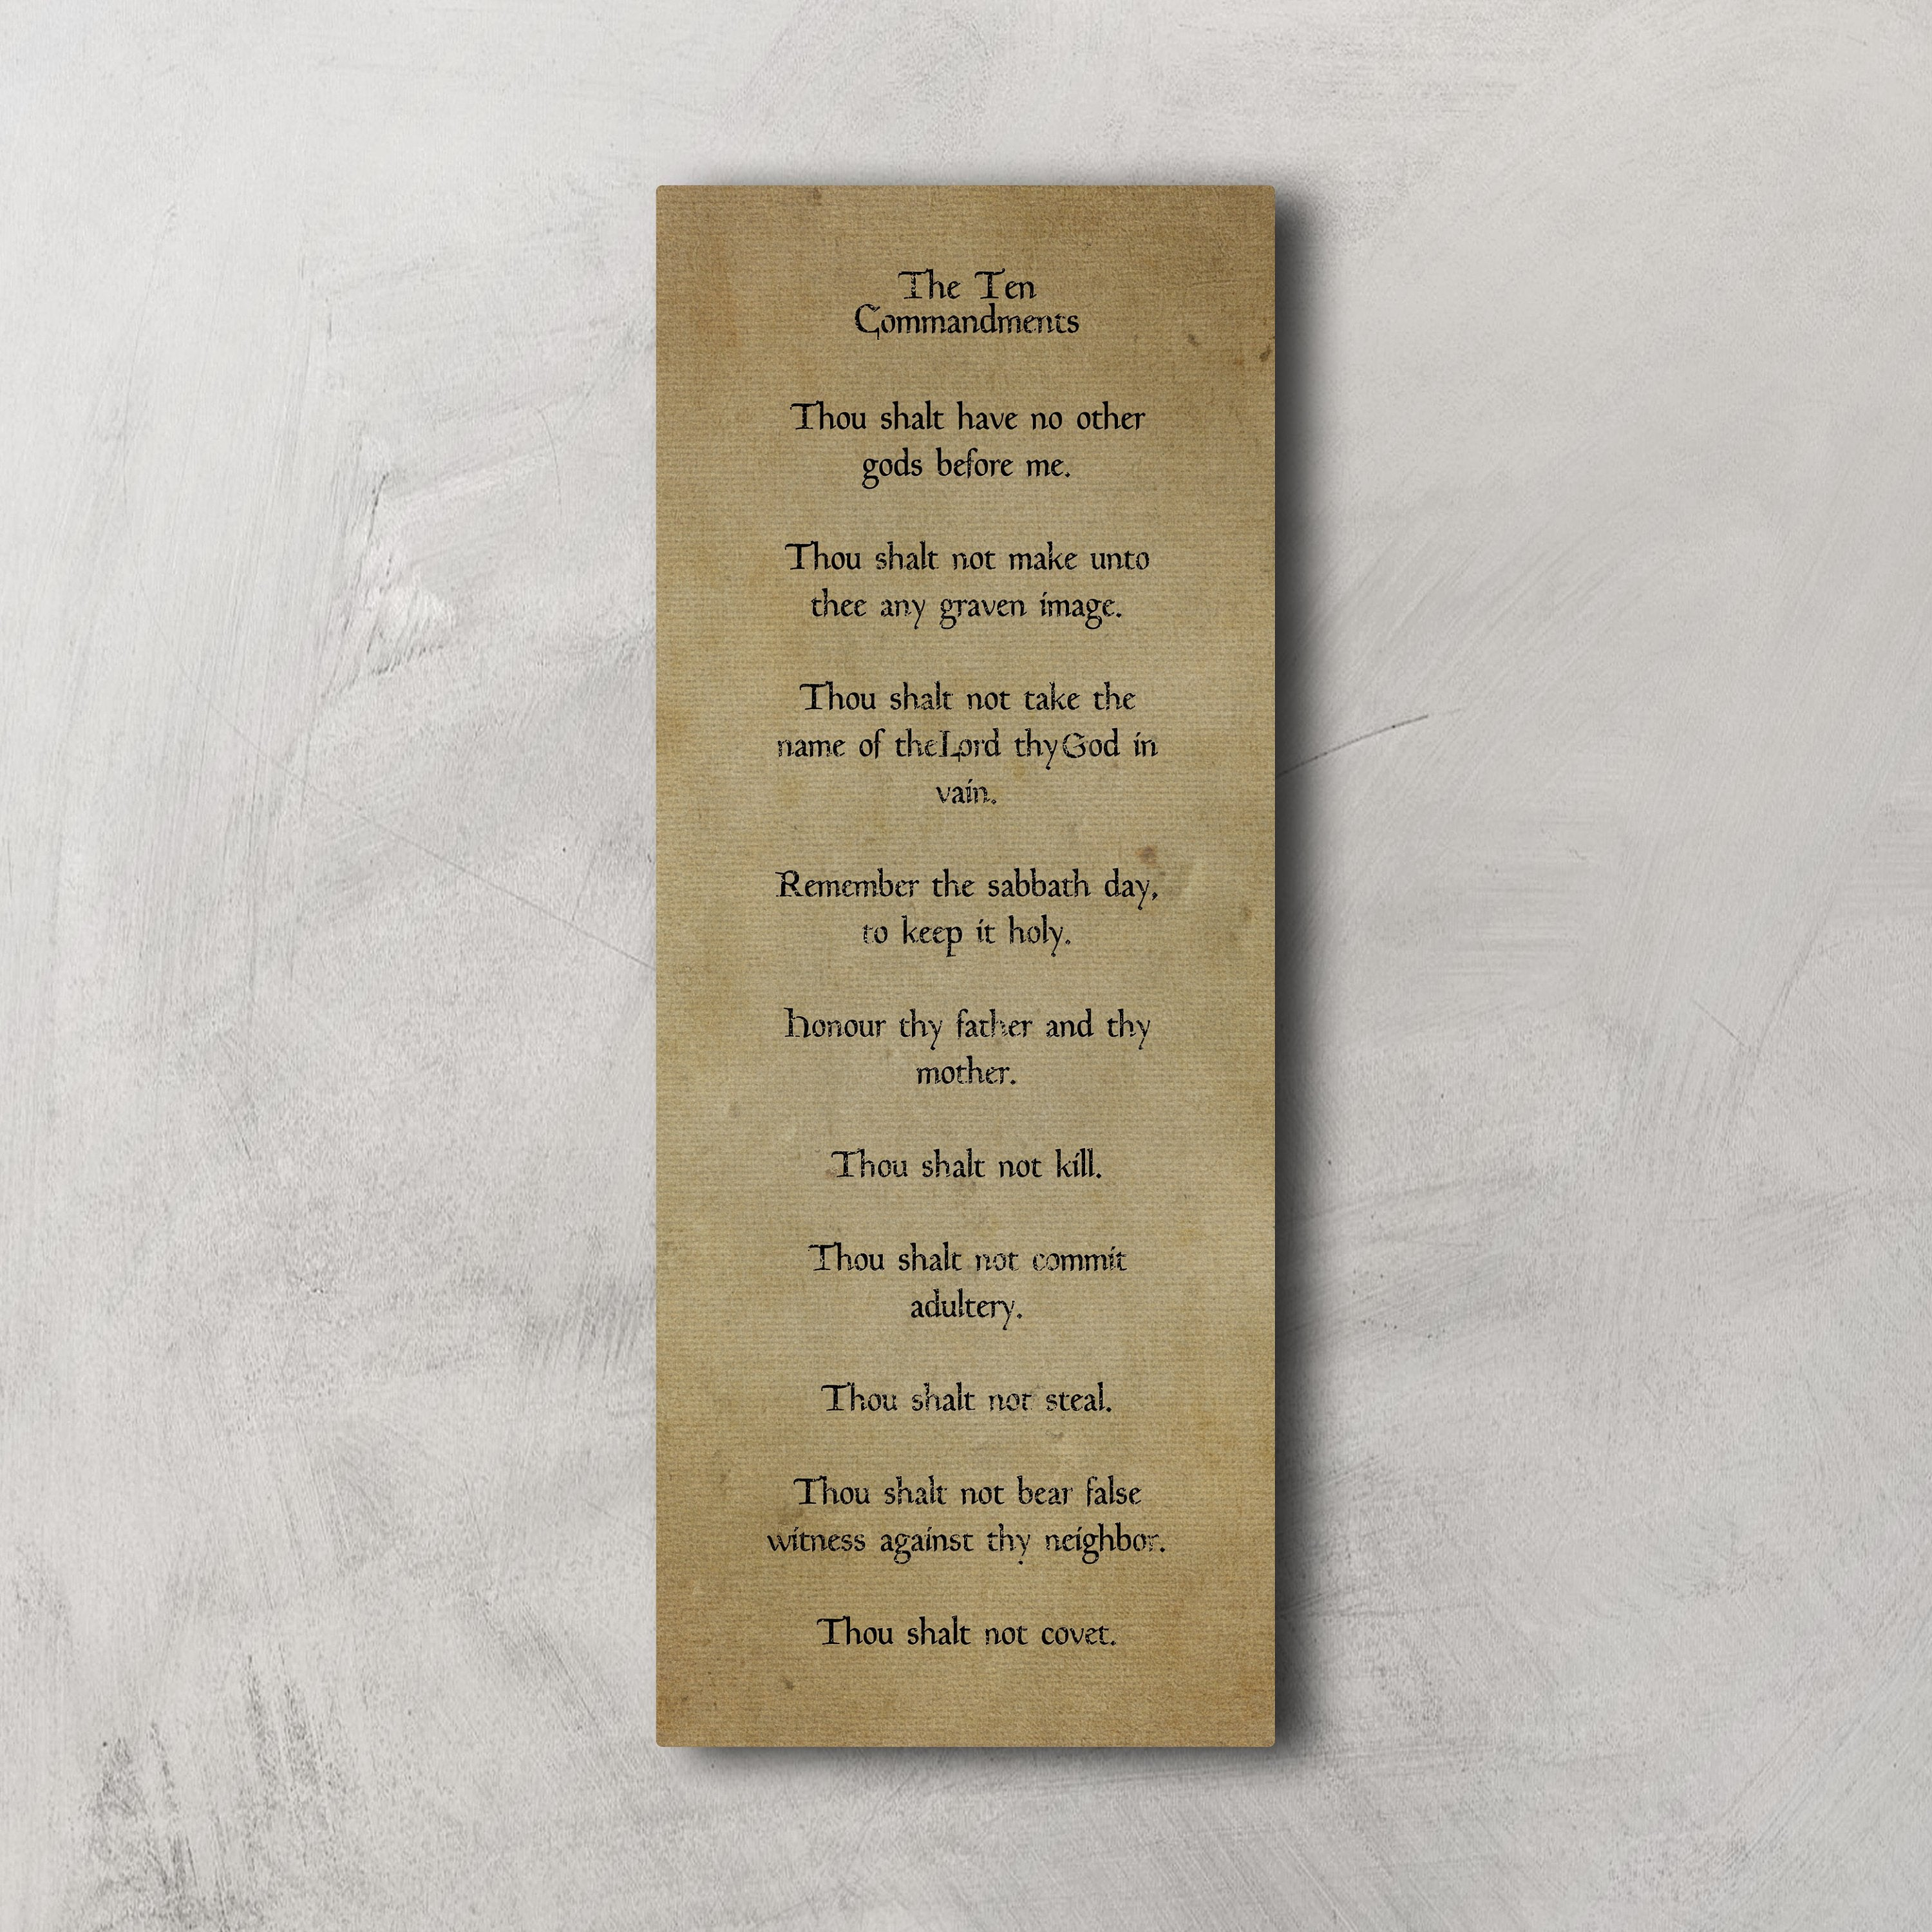 Vintage Ten Commandments On Canvas, Tan Decor for the Den, Antique Religious Wall Art, Religious Canvas Decor, Gift for pastor, Foyer Decor